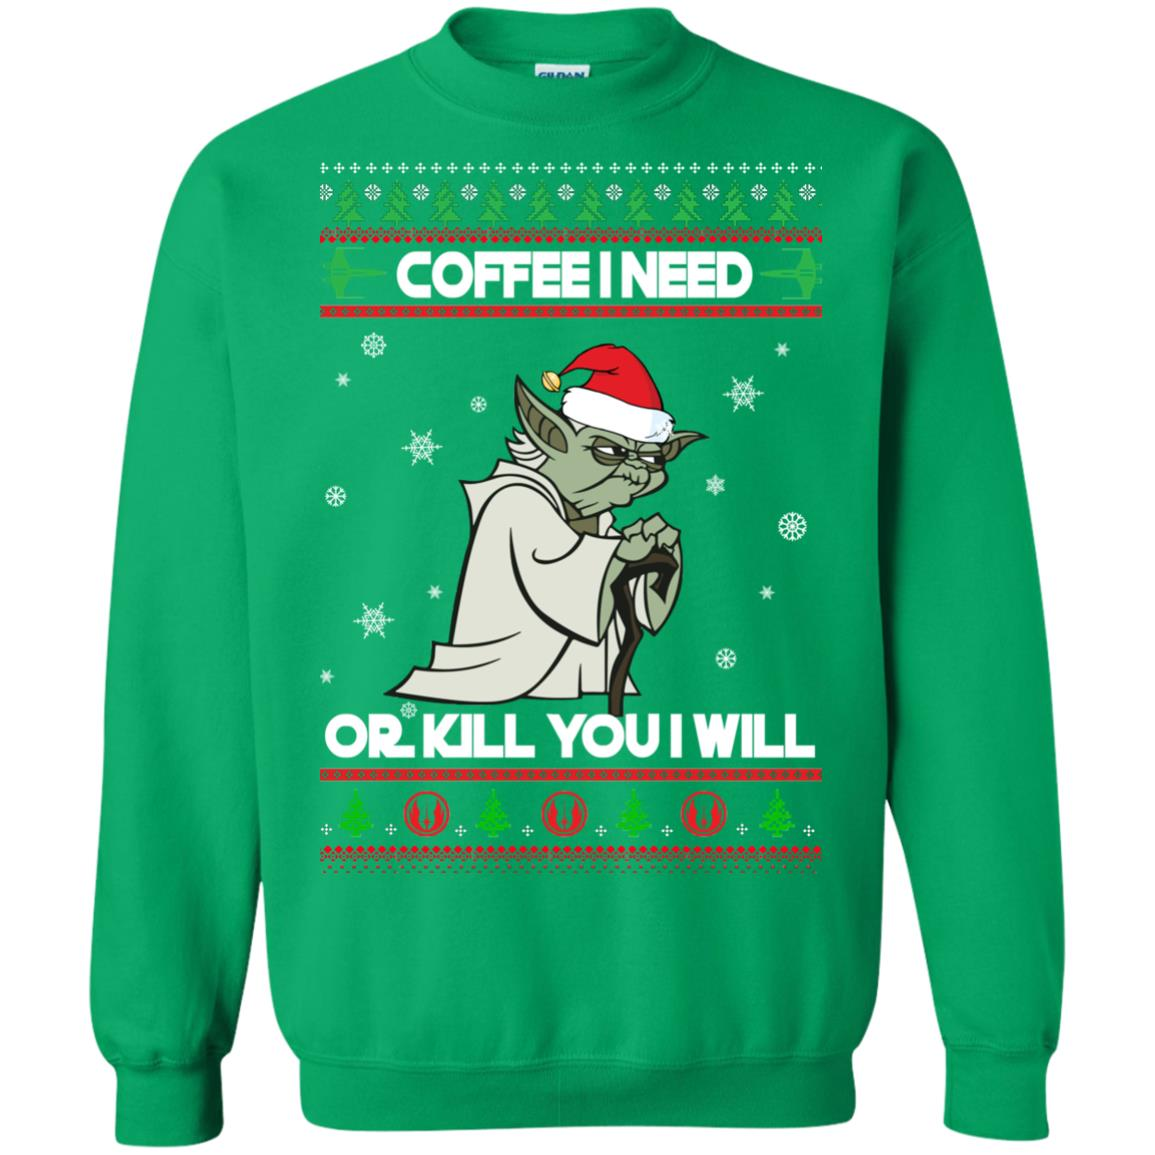 image 1250px Star Wars Yoda Sweater: Coffee I Need Or Kill You I Will Christmas Sweater